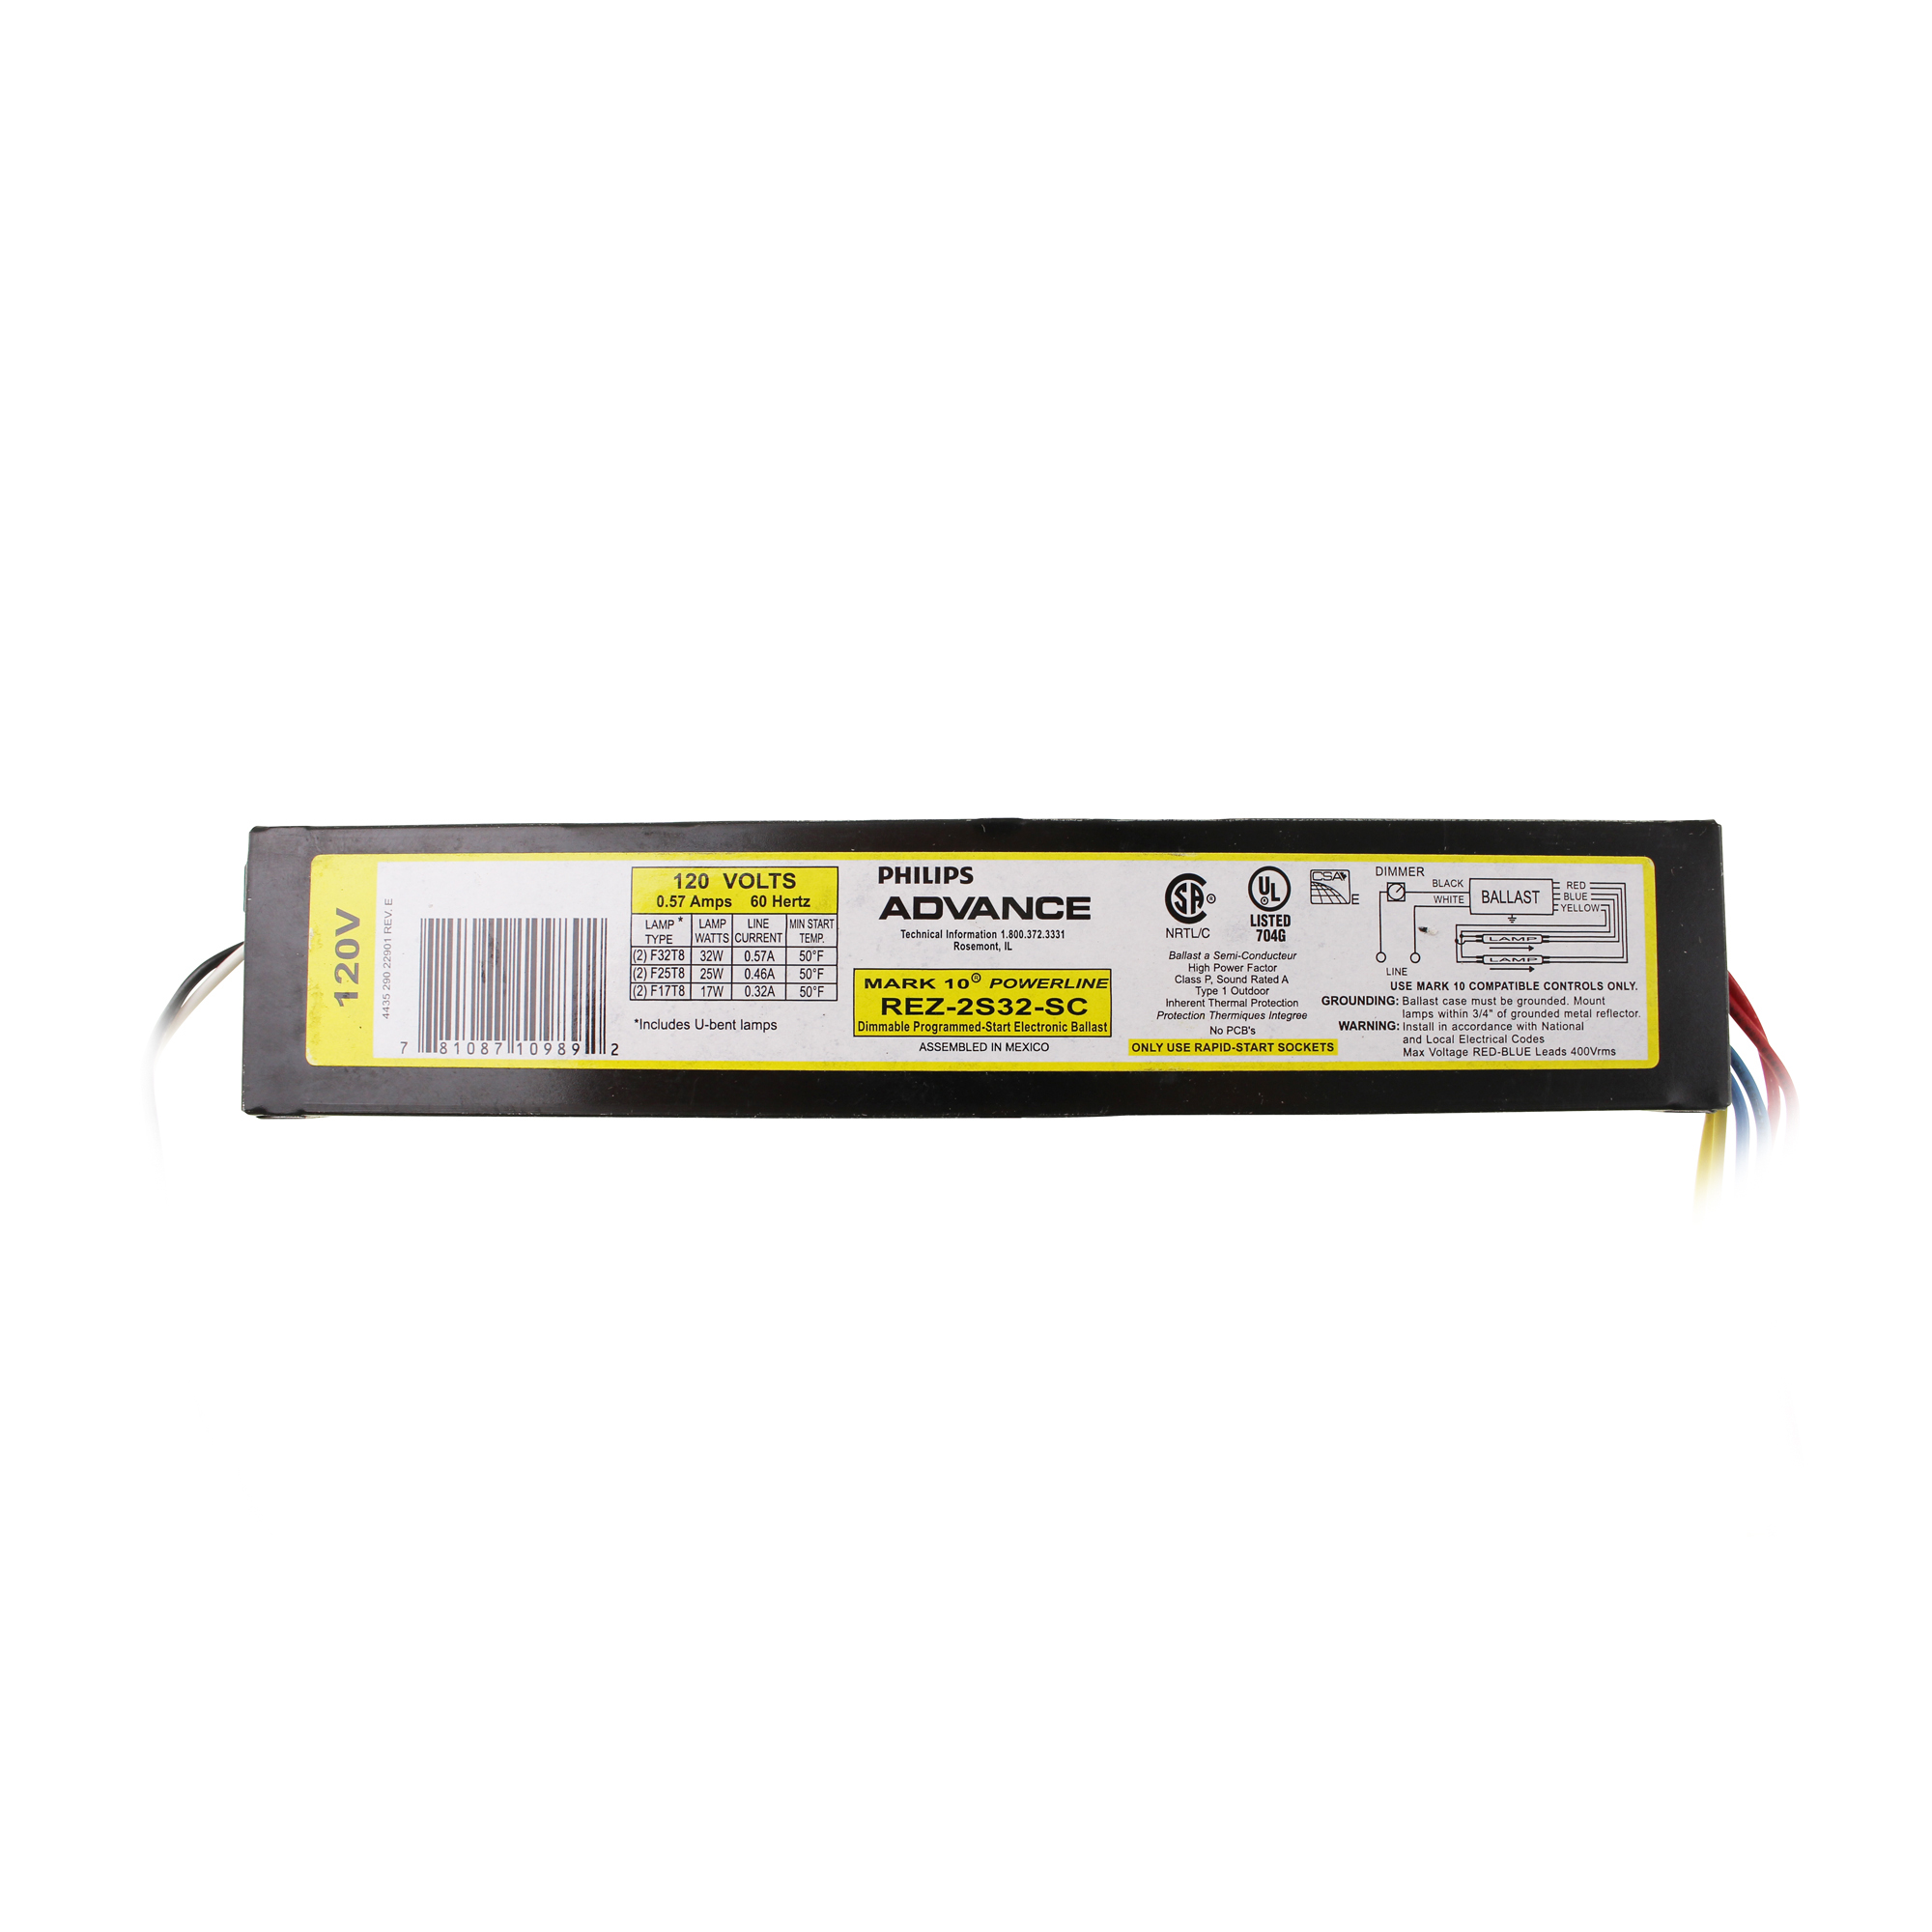 Advance Rez 2s32 Sc Dimming Fluorescent Ballast 2 Lamp F32t8 32w Dimmable Electronic Circuit Feature Included This Auction Is For 1 T8